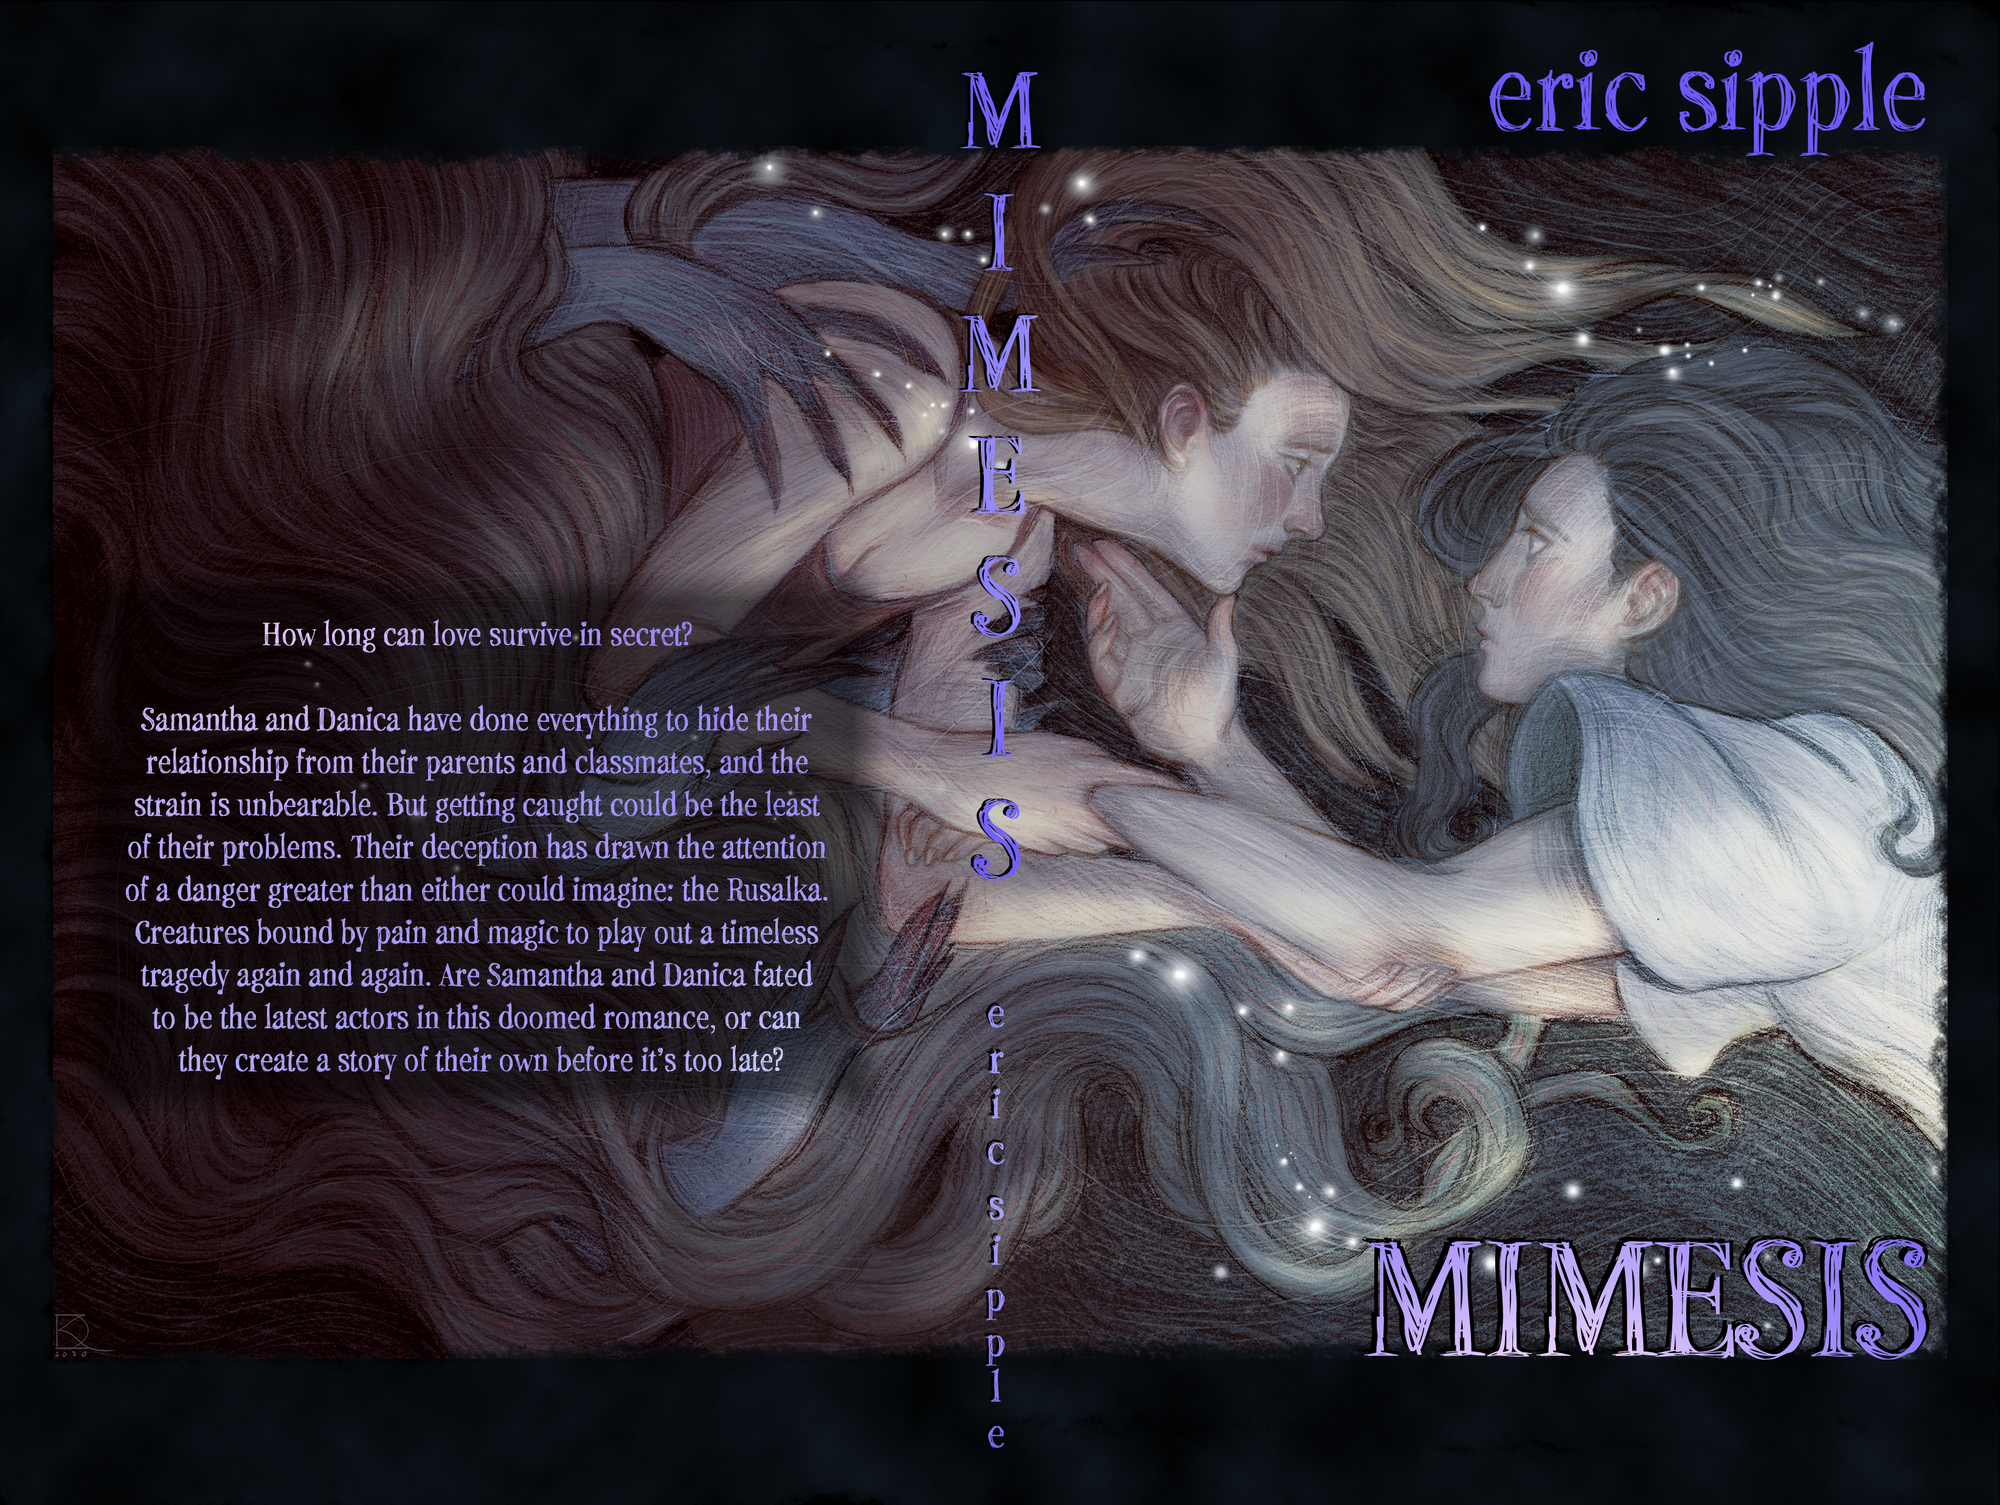 The book cover for MIMESIS. Two girls underwater, one being dragged backwards by monstrous hands, the other trying to hold on as she's pulled away.